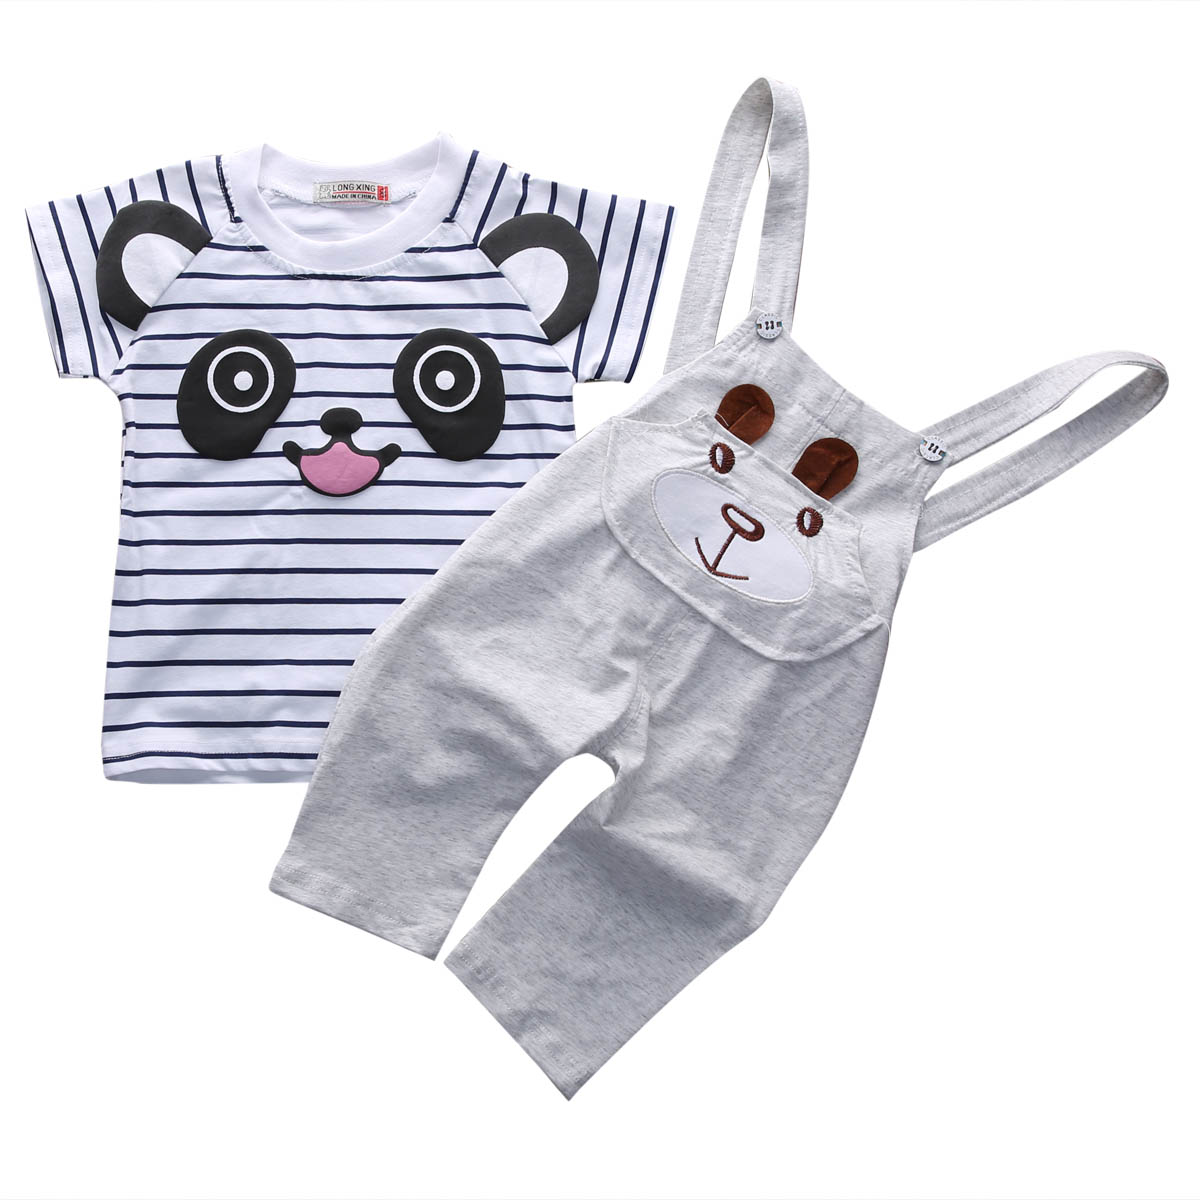 Cute 2PCS Newborn Kids Baby Boy Girls T-shirt Tops+Pants Overalls Outfits Clothes Set Summer Striped Tees Clothing 2pcs set baby clothes set boy